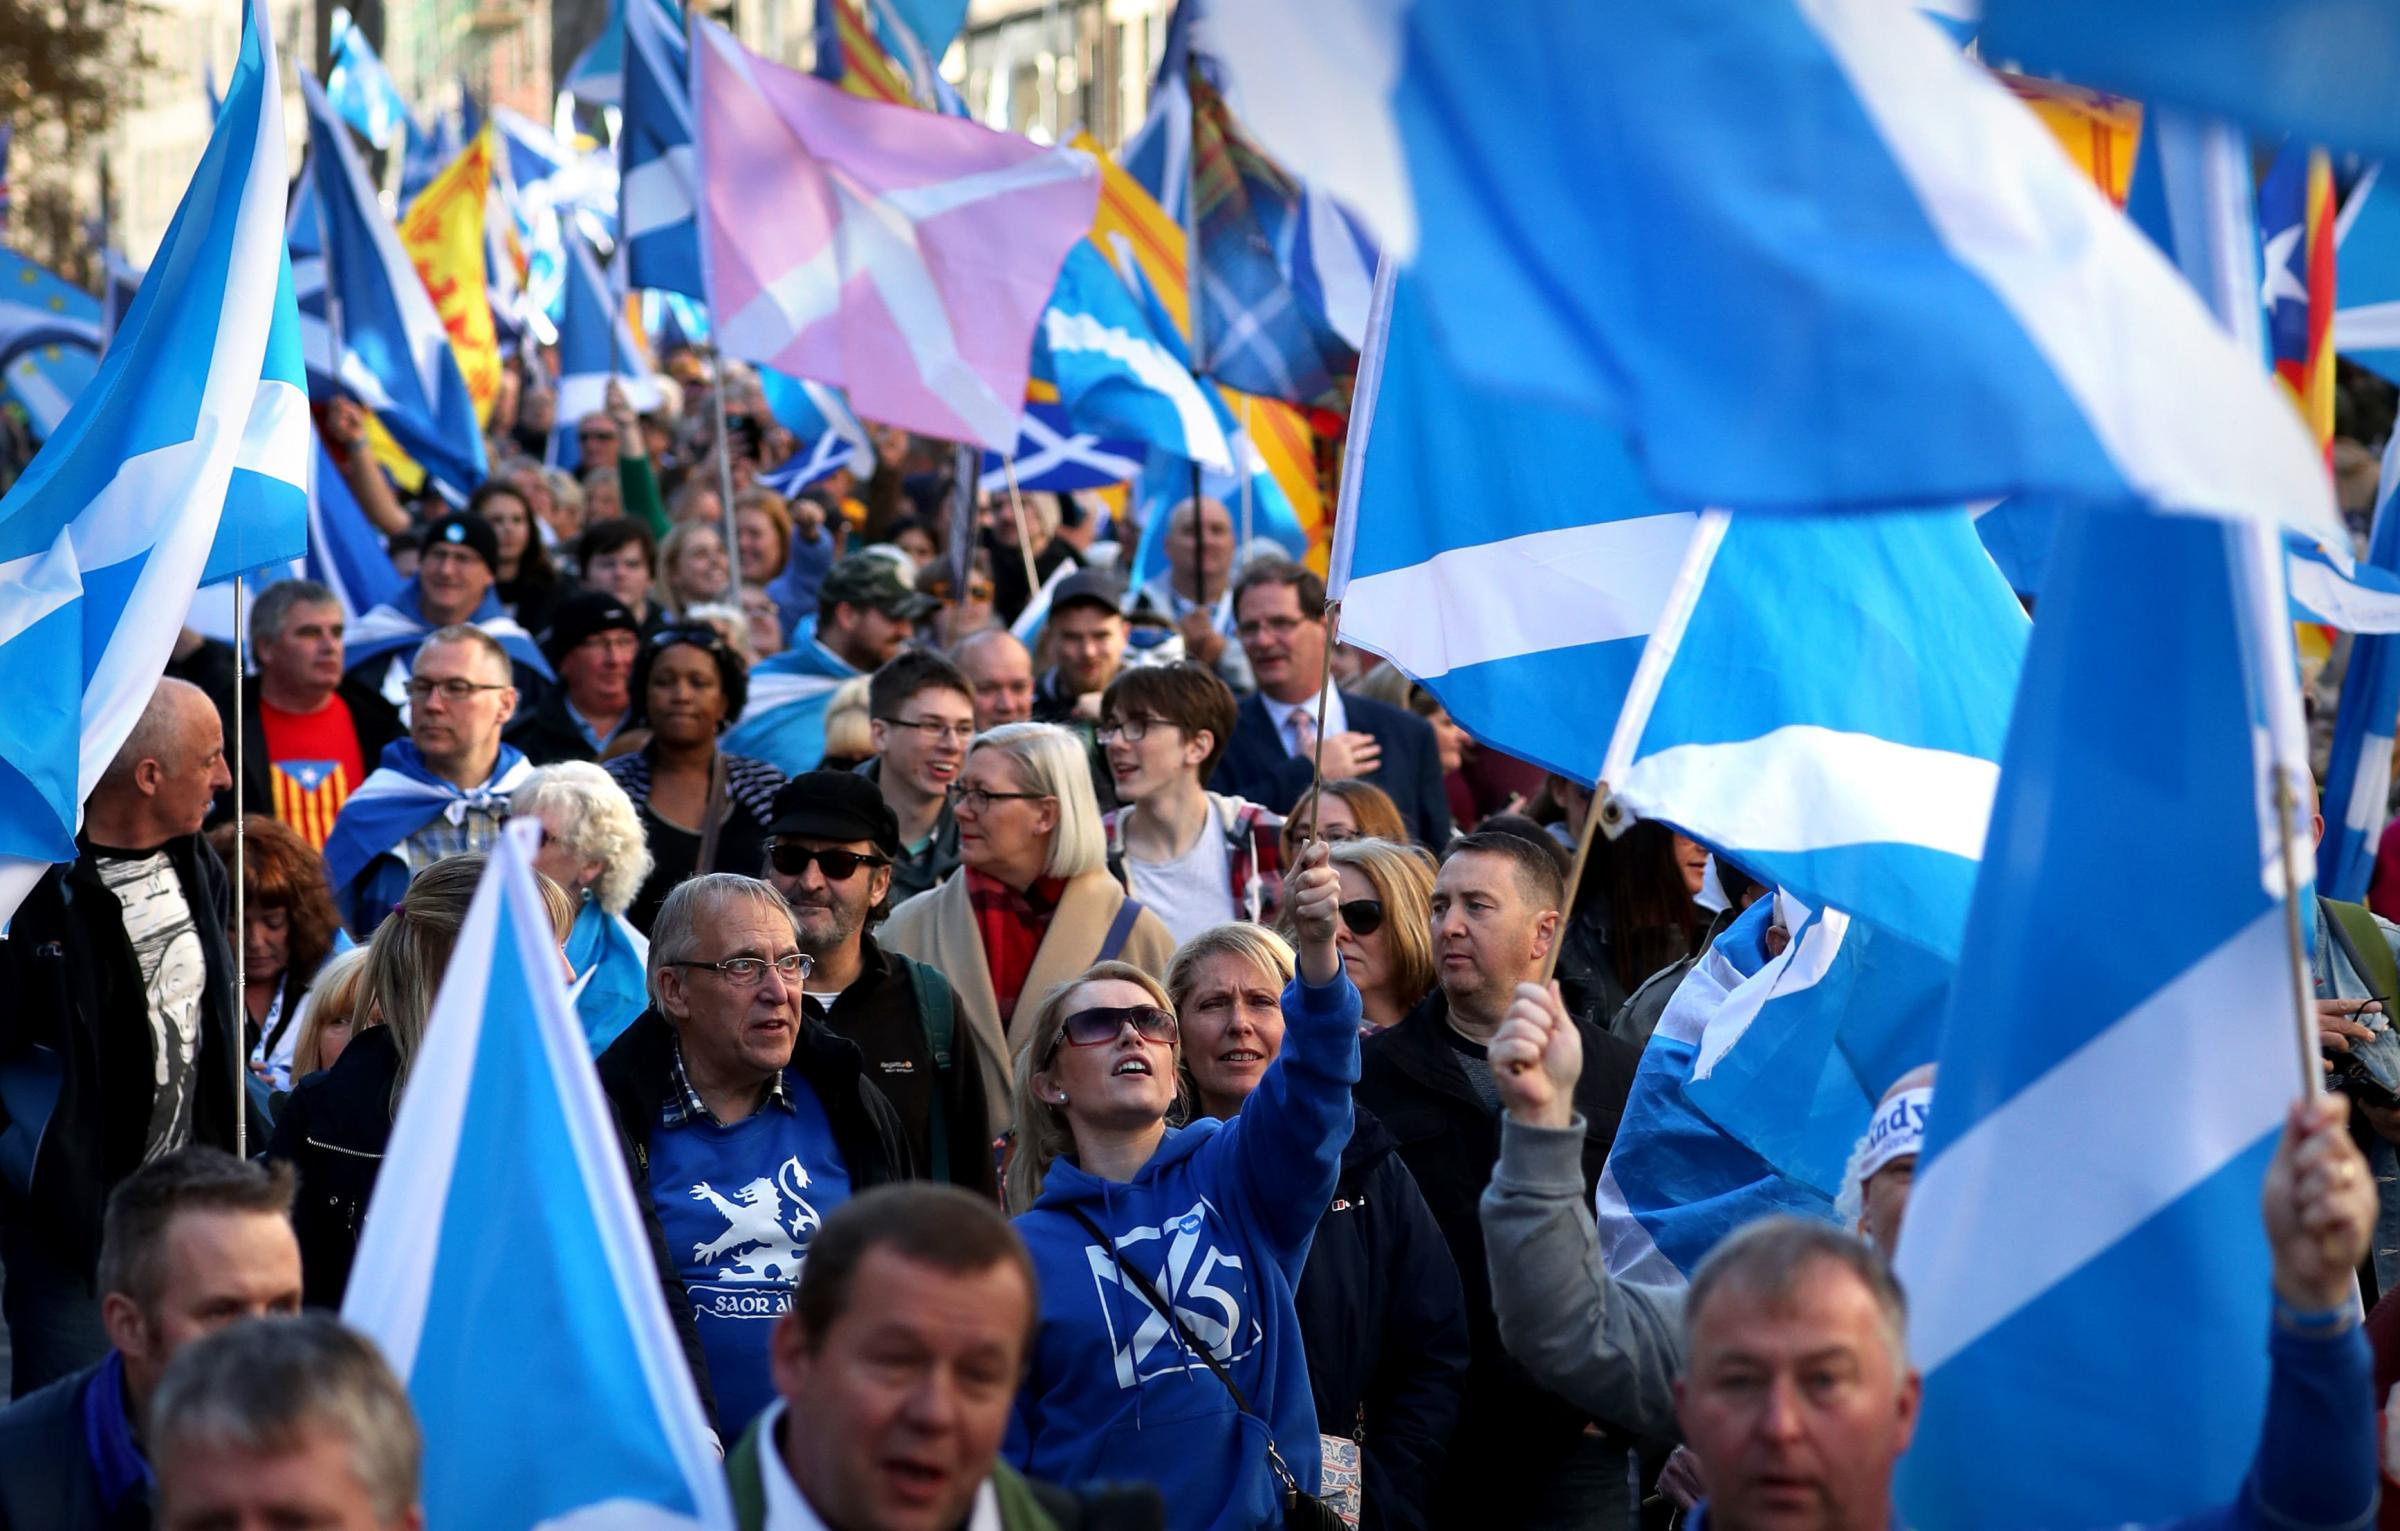 There was a joyous atmosphere in Edinburgh on Saturday